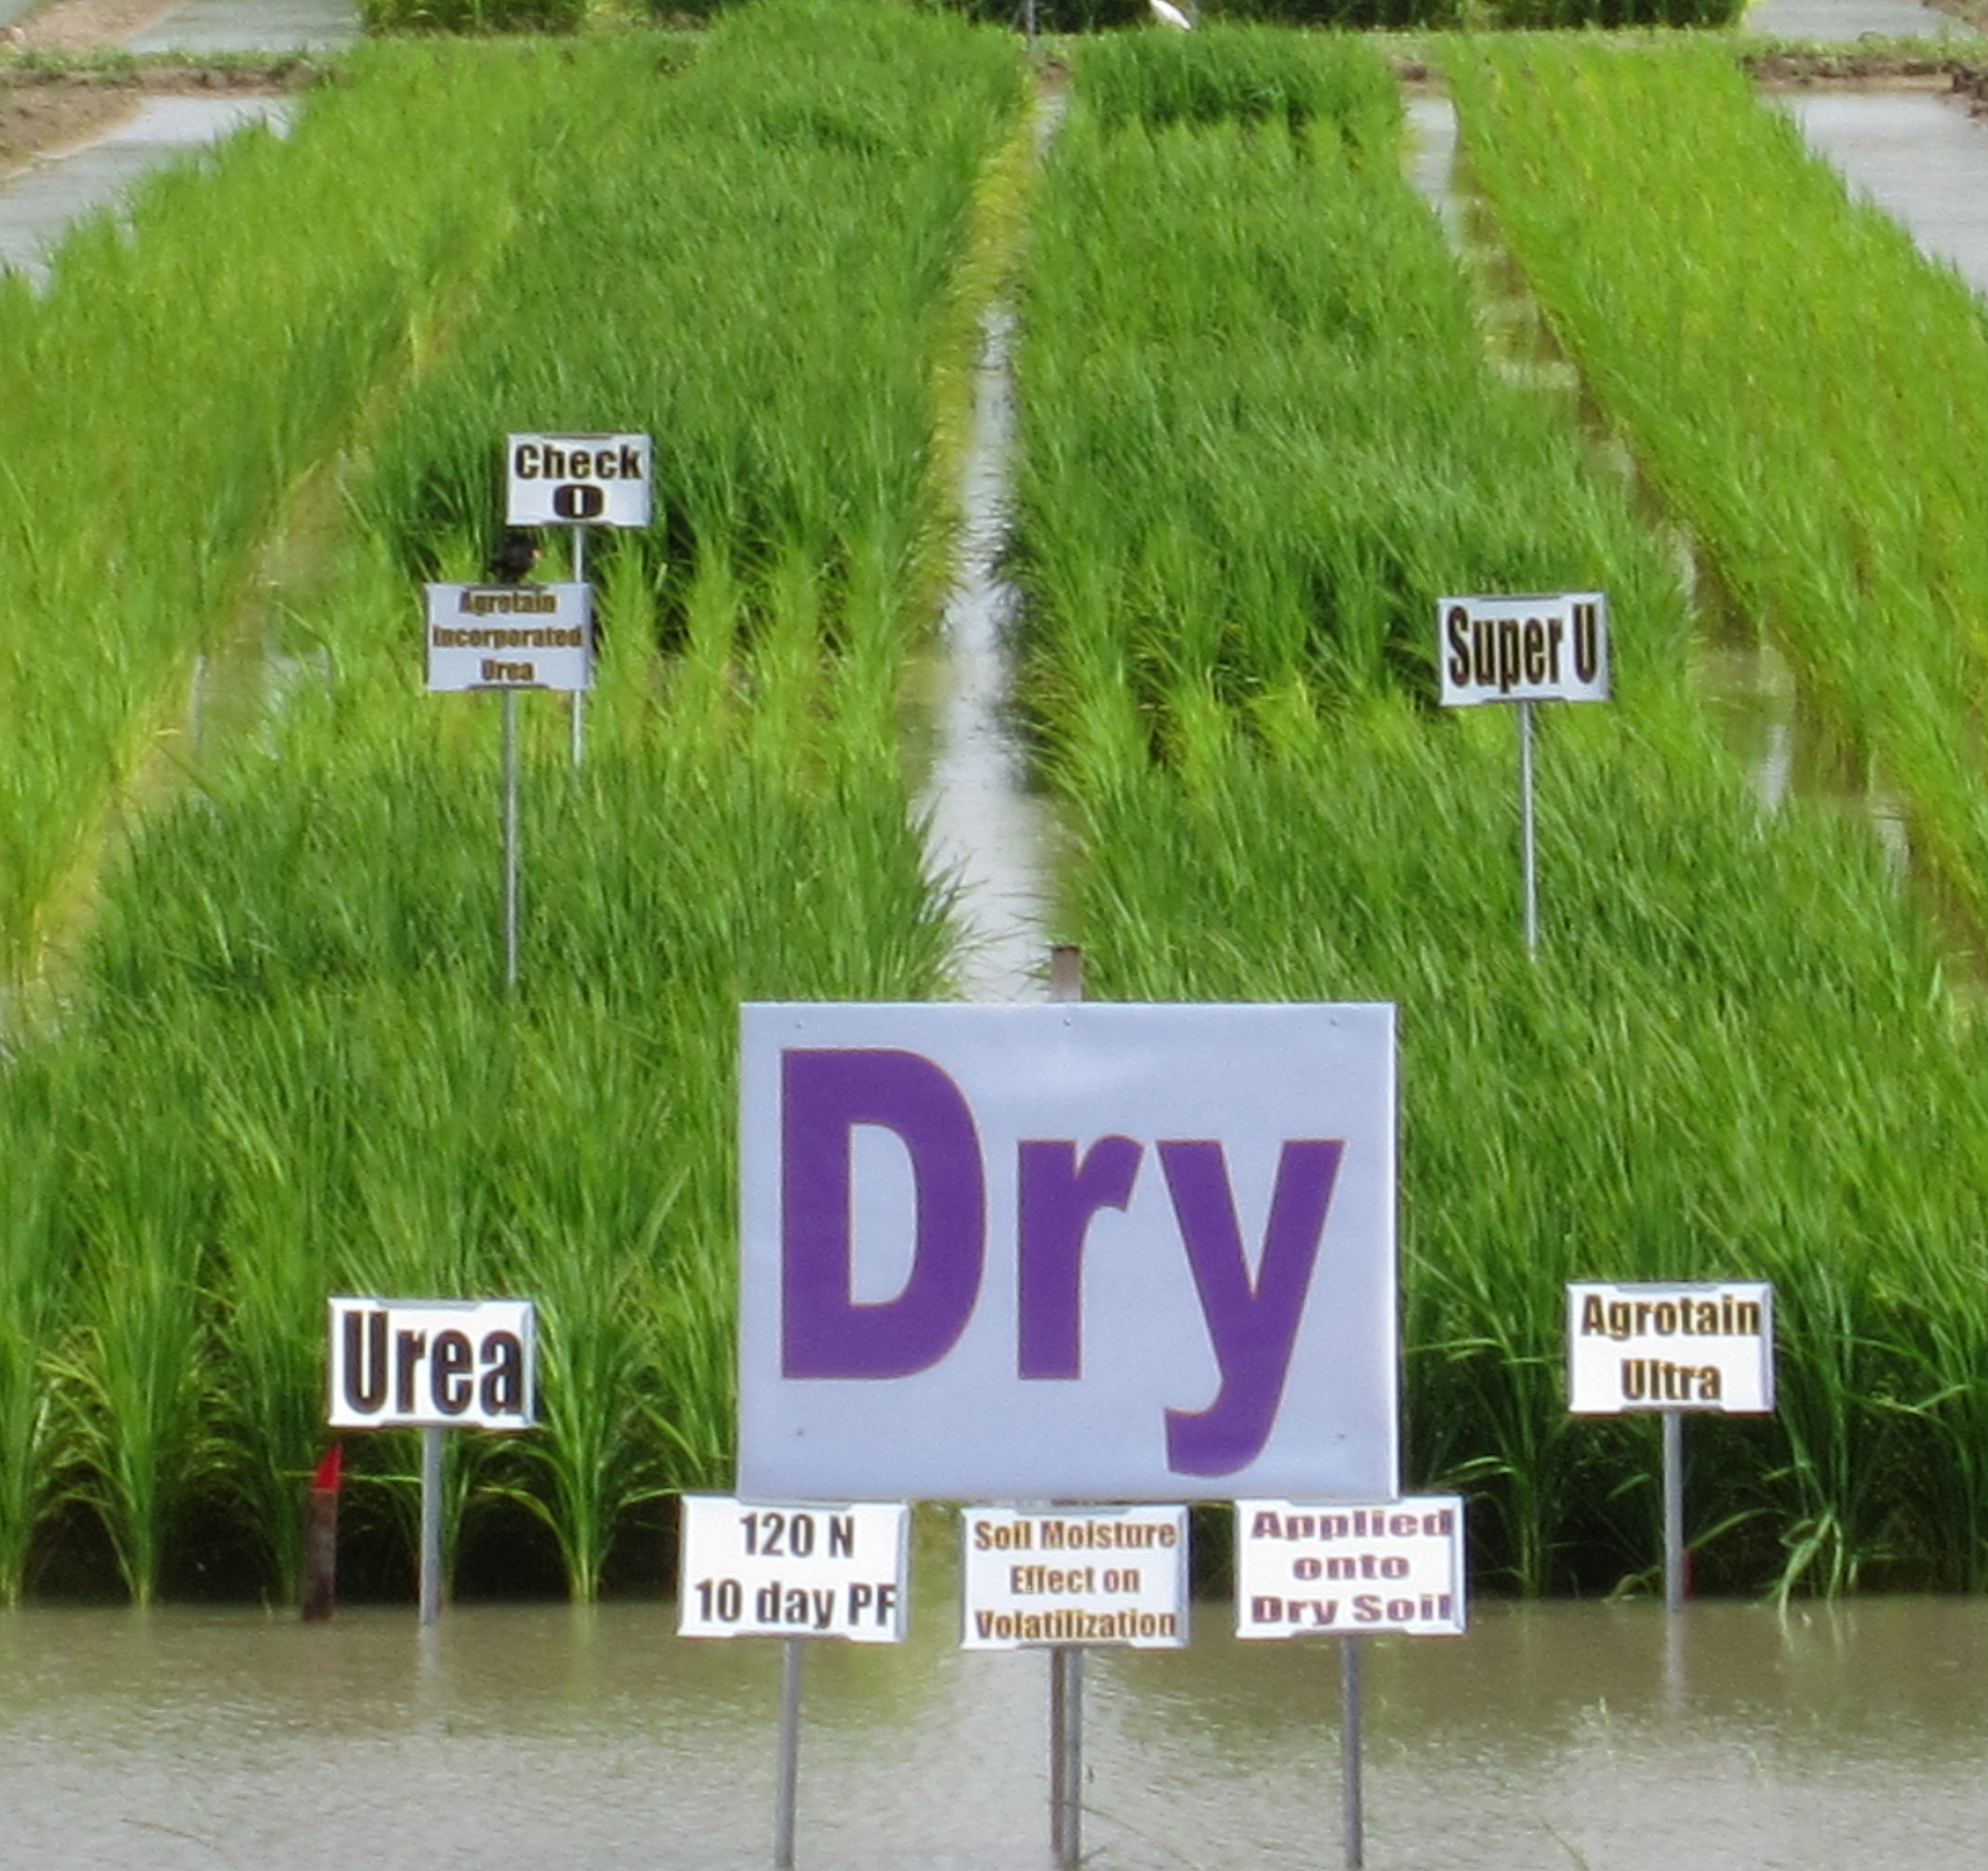 fertilizer study - dry ground.jpg thumbnail